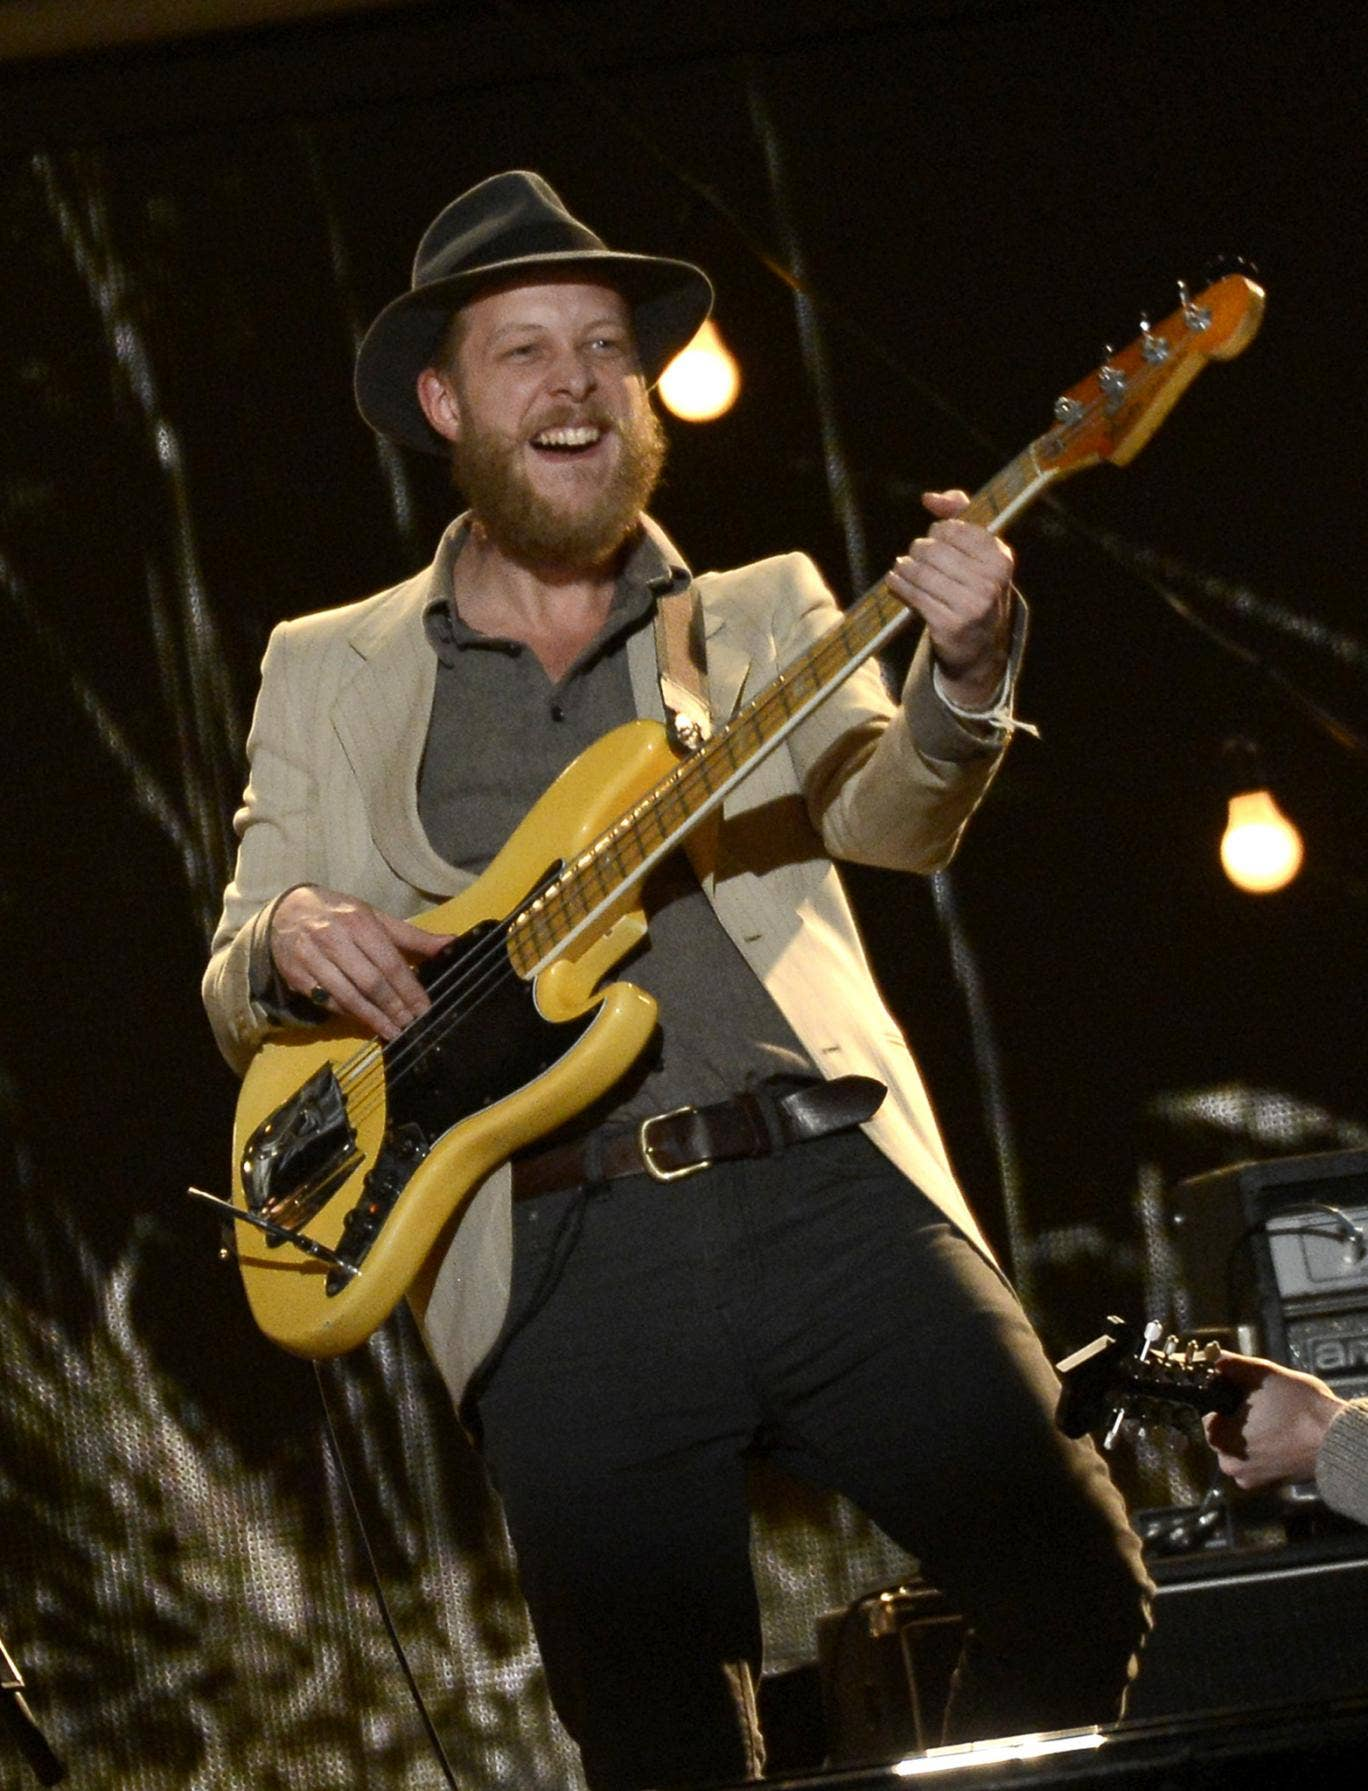 Mumford & Sons bassist Ted Dwane is currently receiving emergency treatment in hospital.